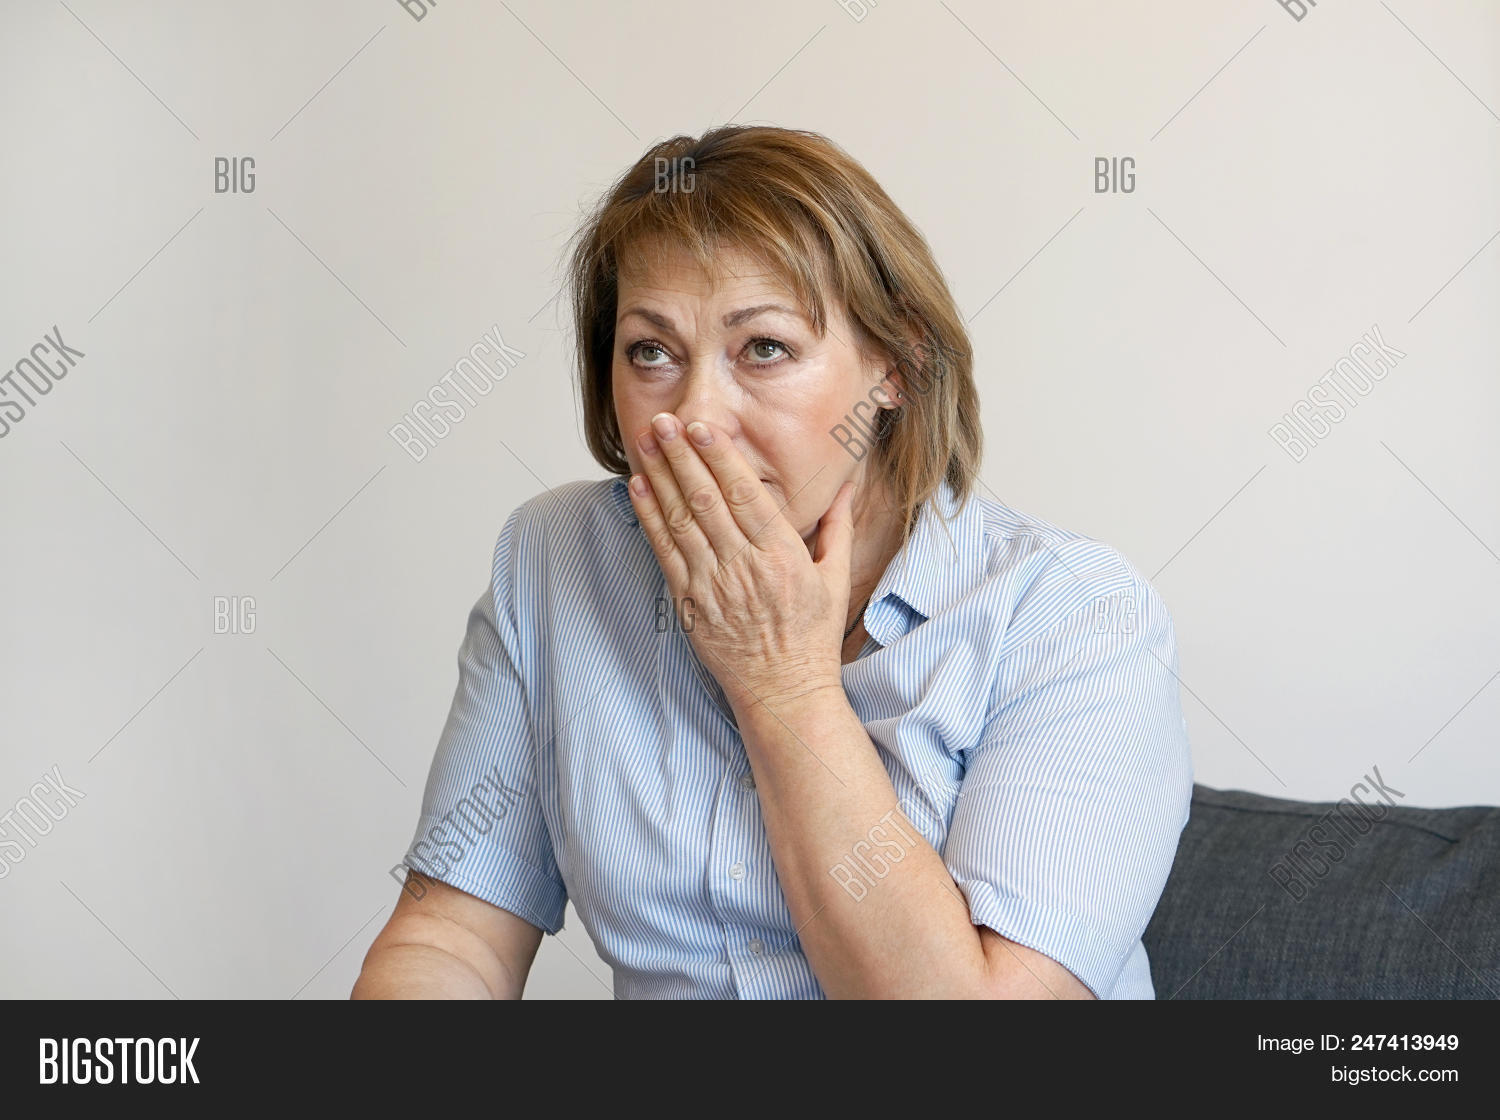 Lonely Elderly Woman, Image & Photo (Free Trial) | Bigstock